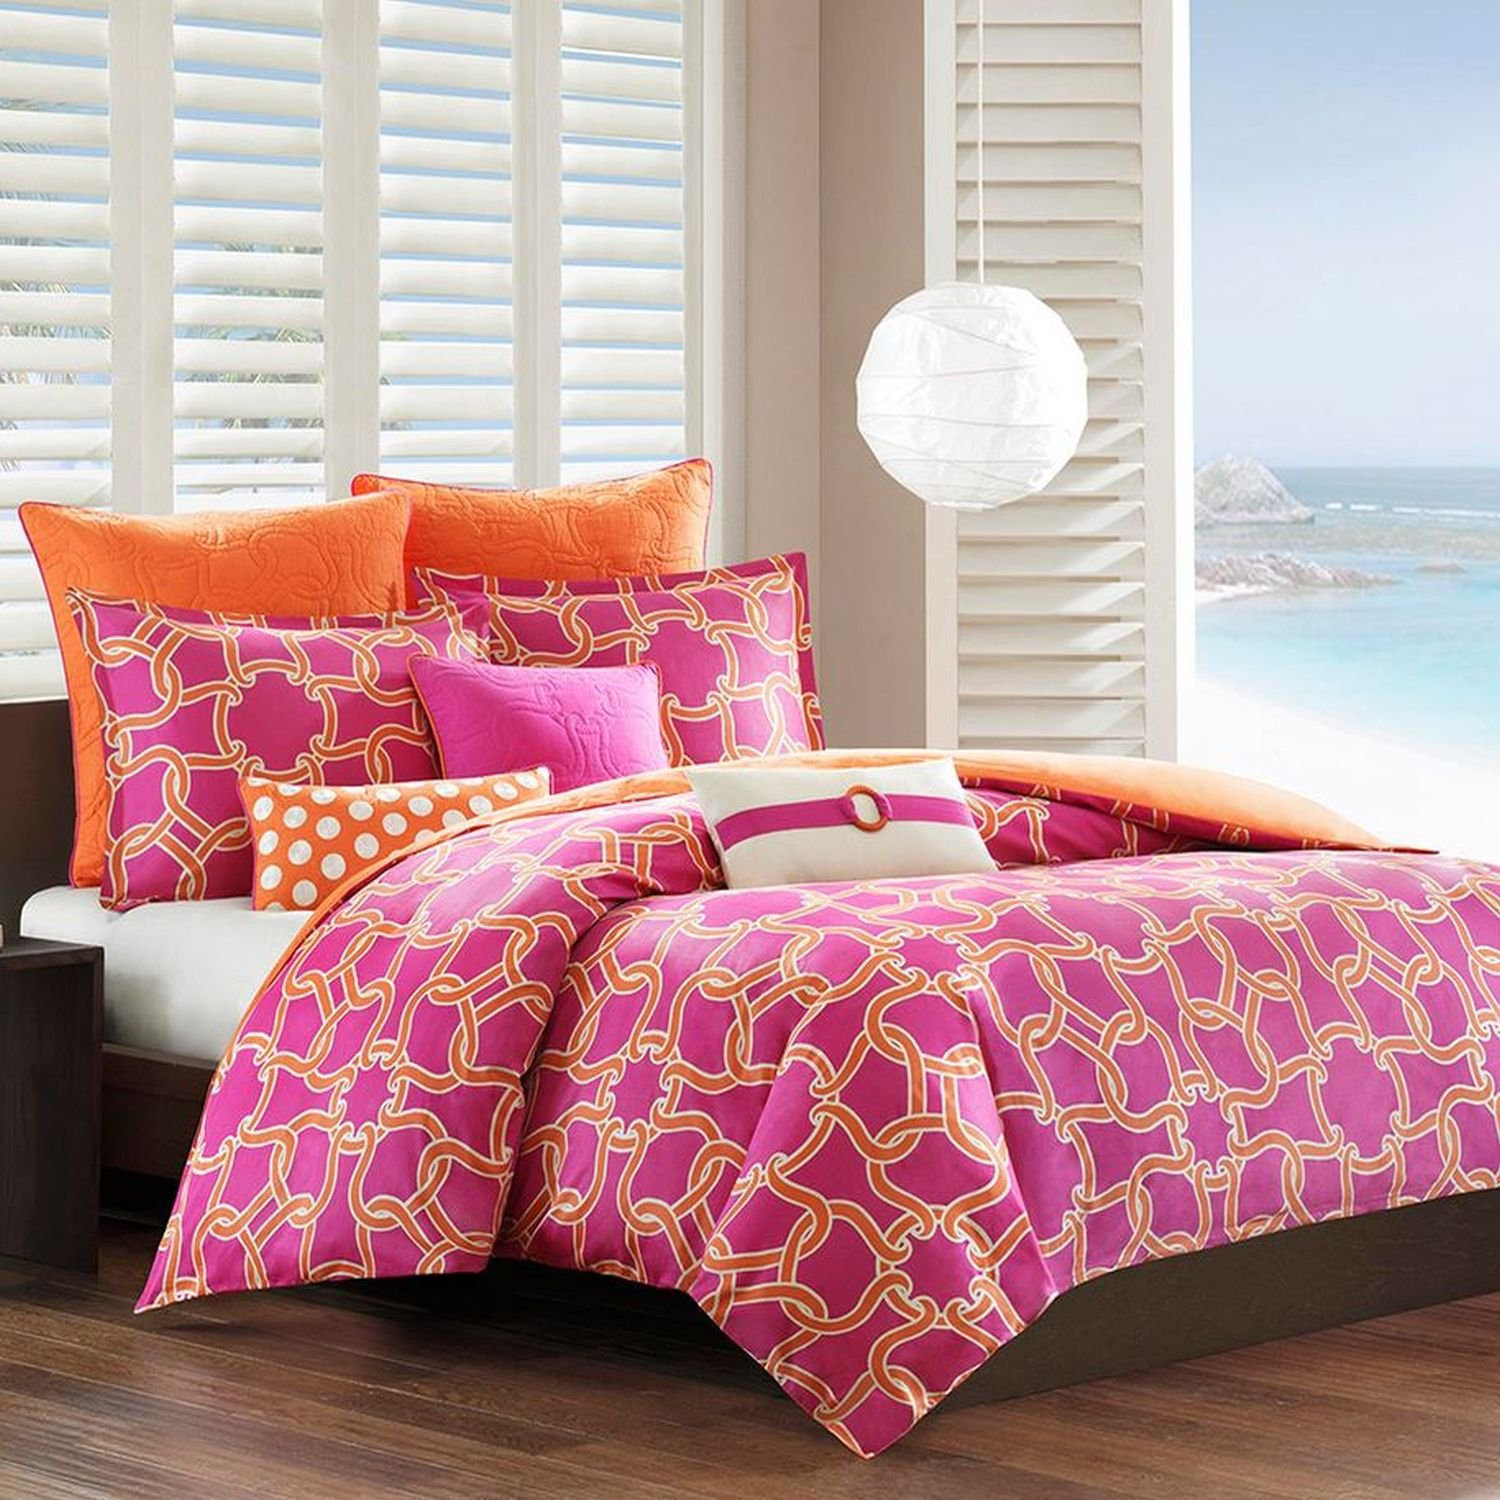 a232b932764 Echo Catalina Duvet Cover - Pink - King delicate. Adrien Boys Bedding  Reversible Quilt and Pillow Sham Set ...